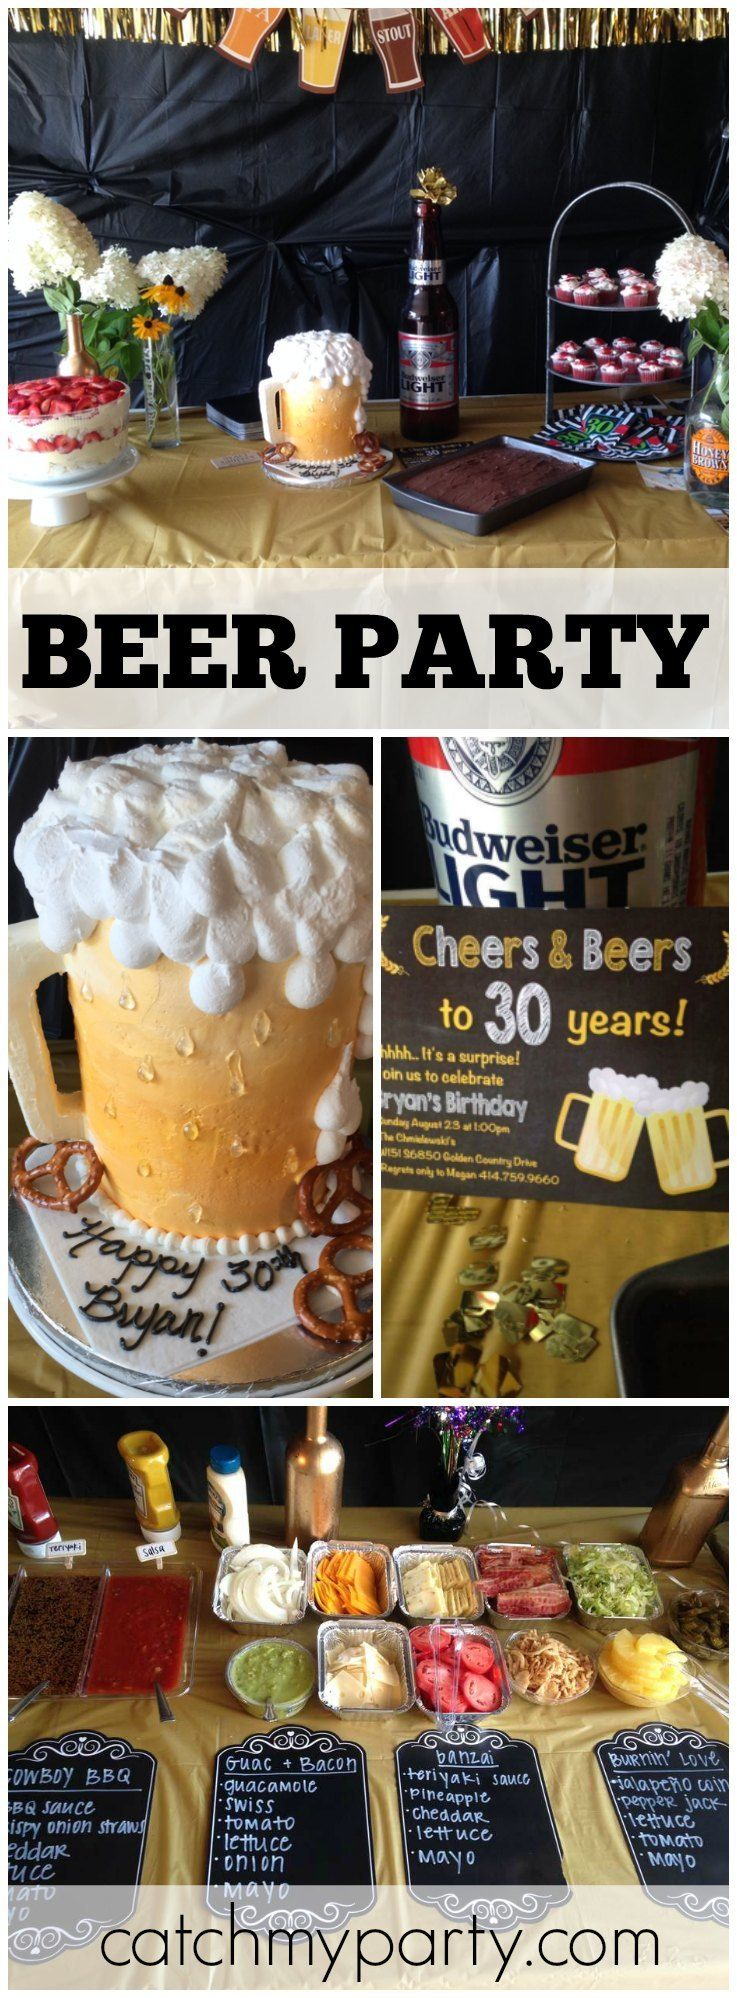 Beer is the theme for this 30th birthday party! See more